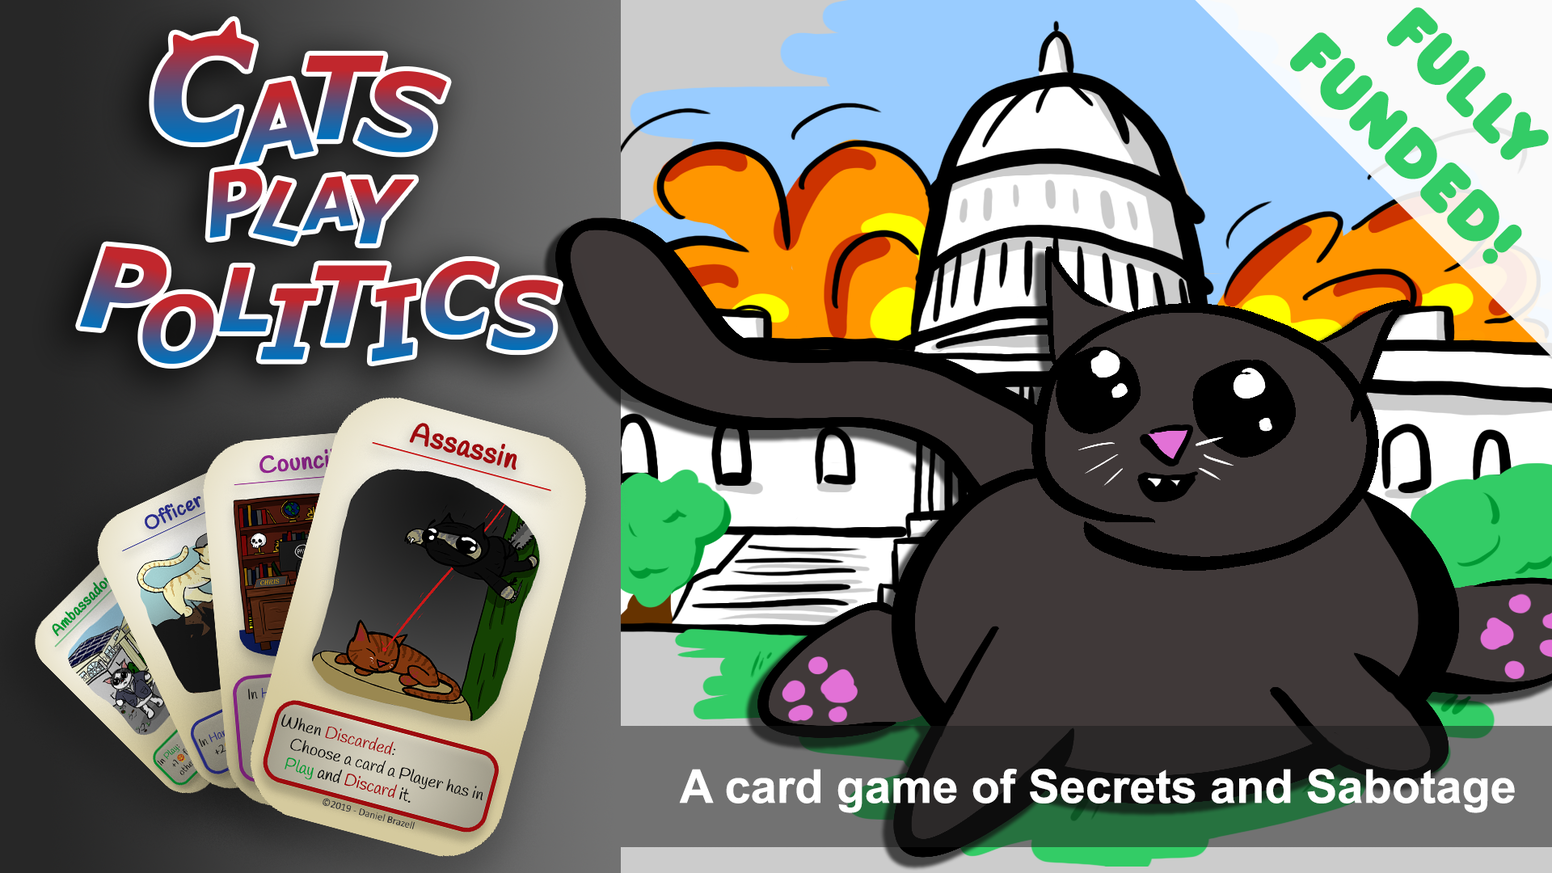 A strategic Card Game of Cats and Politics, somehow all contained in a single Mint Tin.